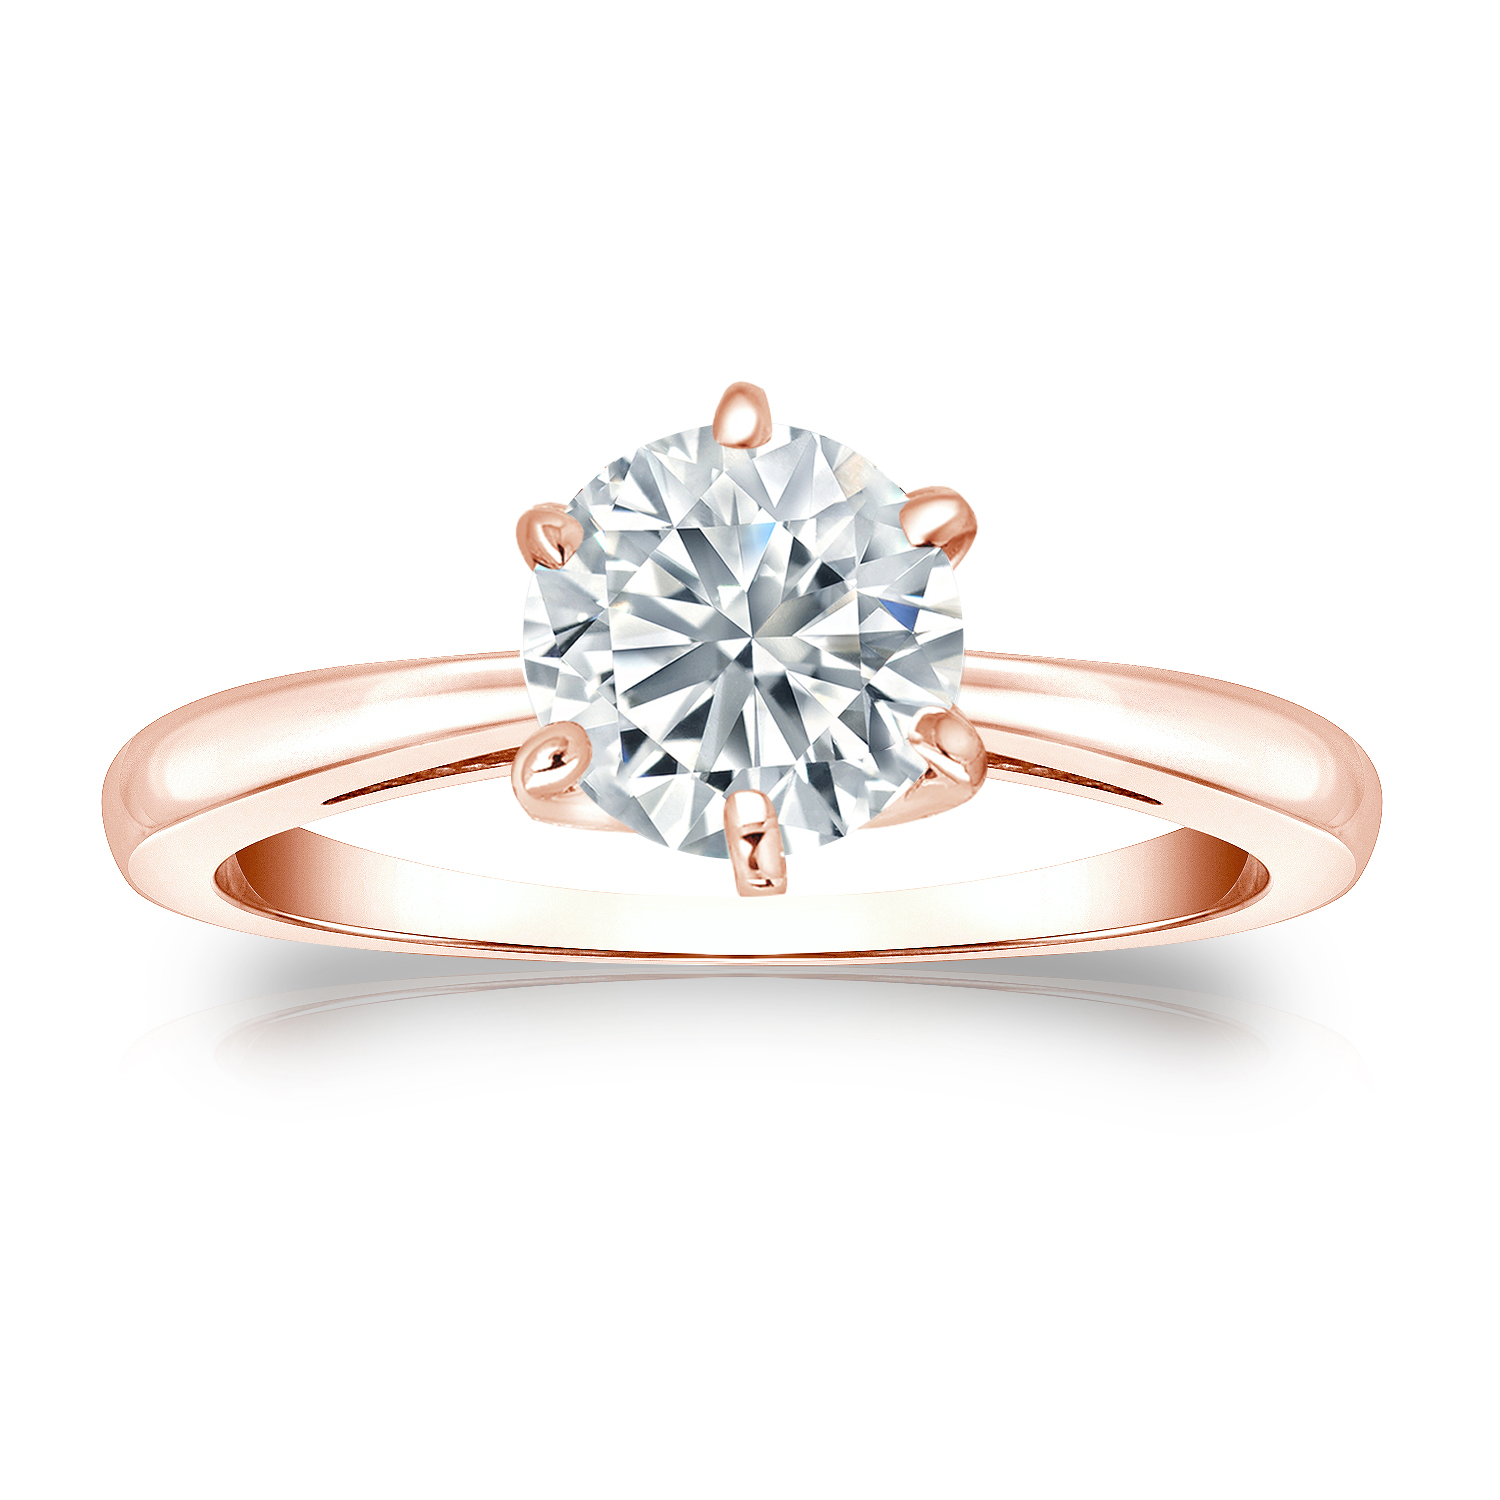 SCARLETT Solitaire Six Prong Diamond Engagement Ring In 14K Rose Gold